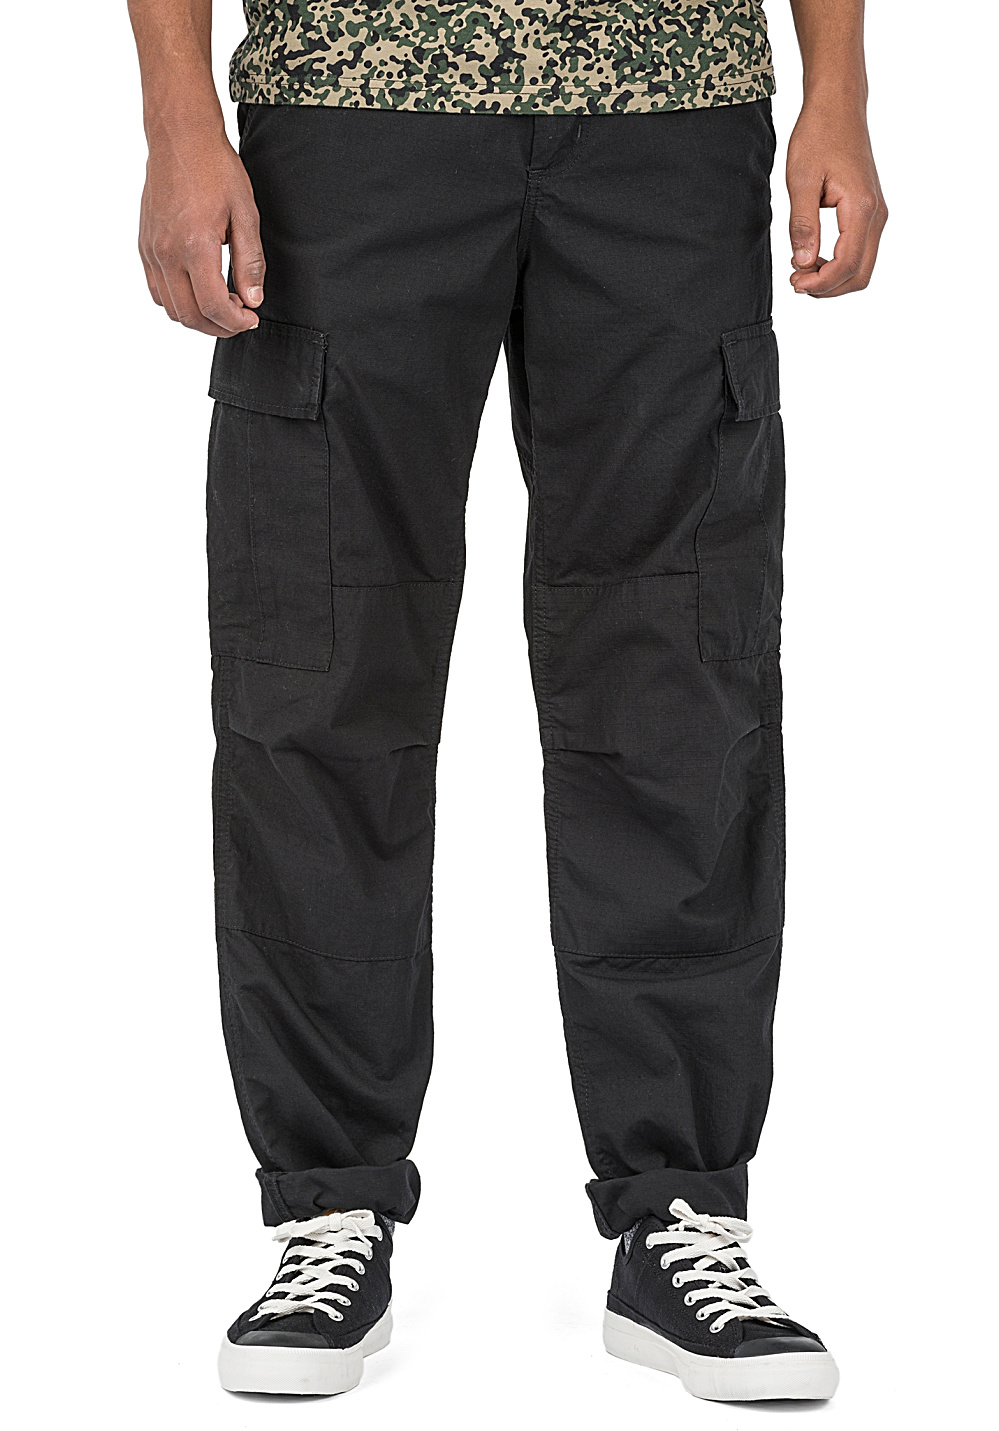 carhartt wip regular pantalon cargo pour homme noir planet sports. Black Bedroom Furniture Sets. Home Design Ideas